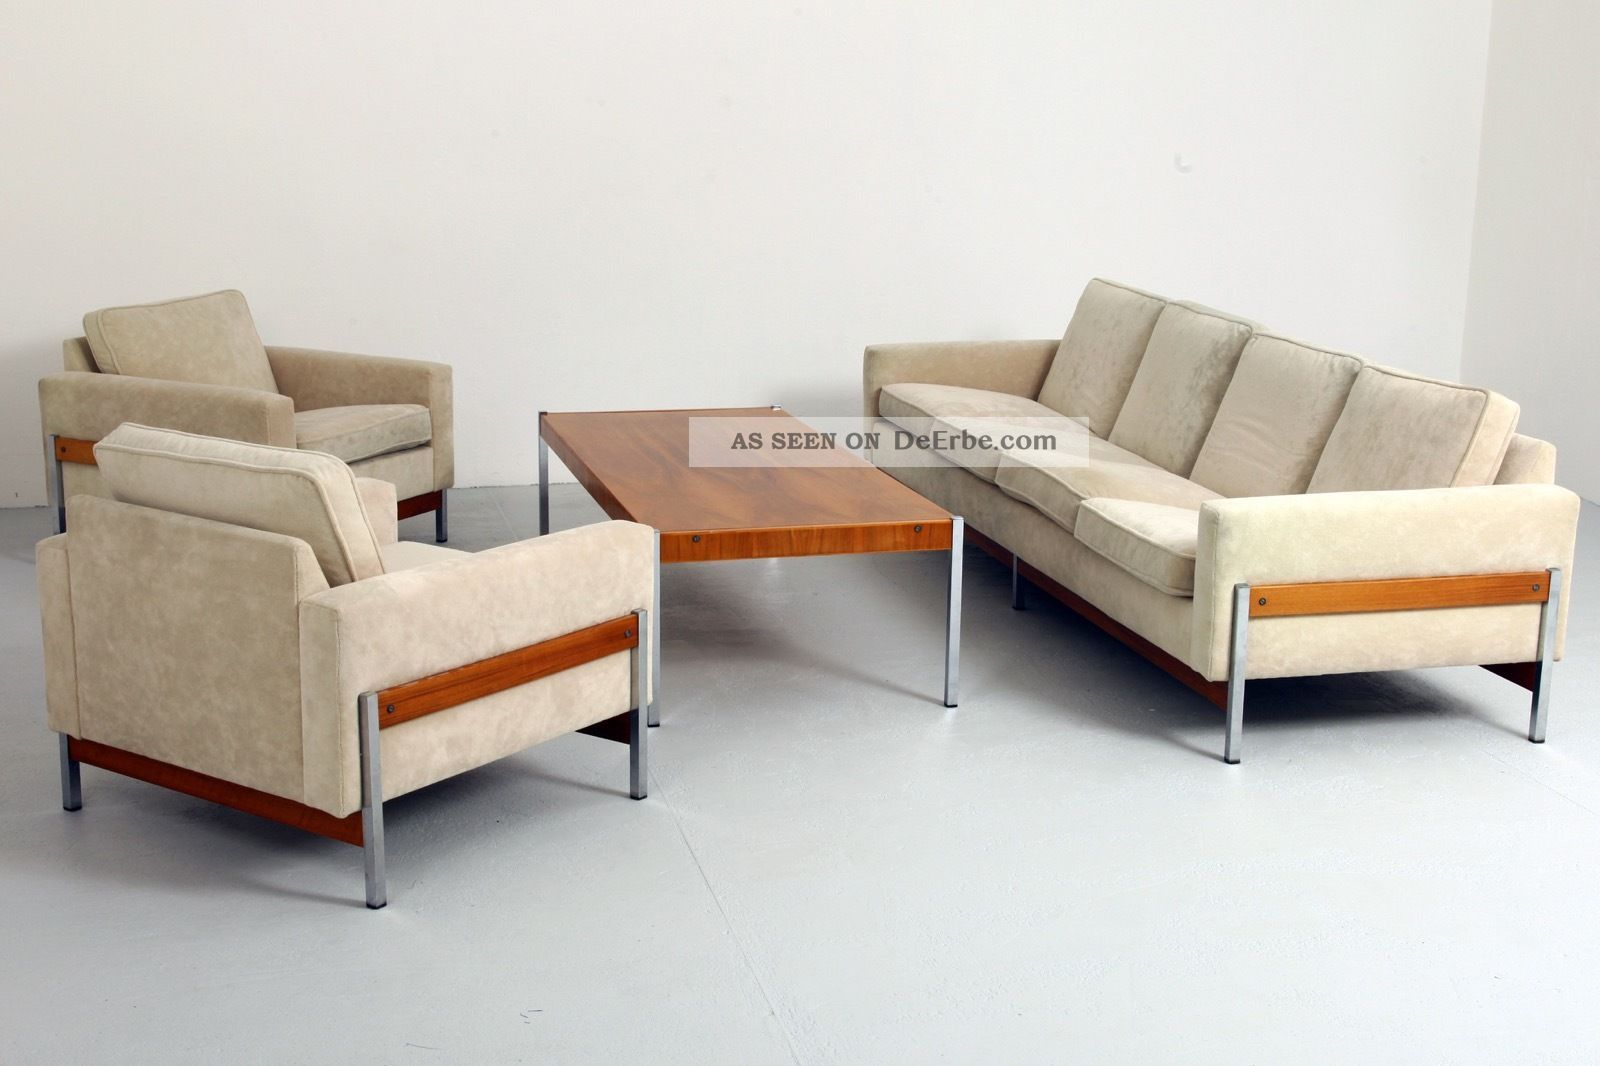 International Style Sofa Garnitur 1960's Modernism - Florence Knoll Behr ära 1960-1969 Bild